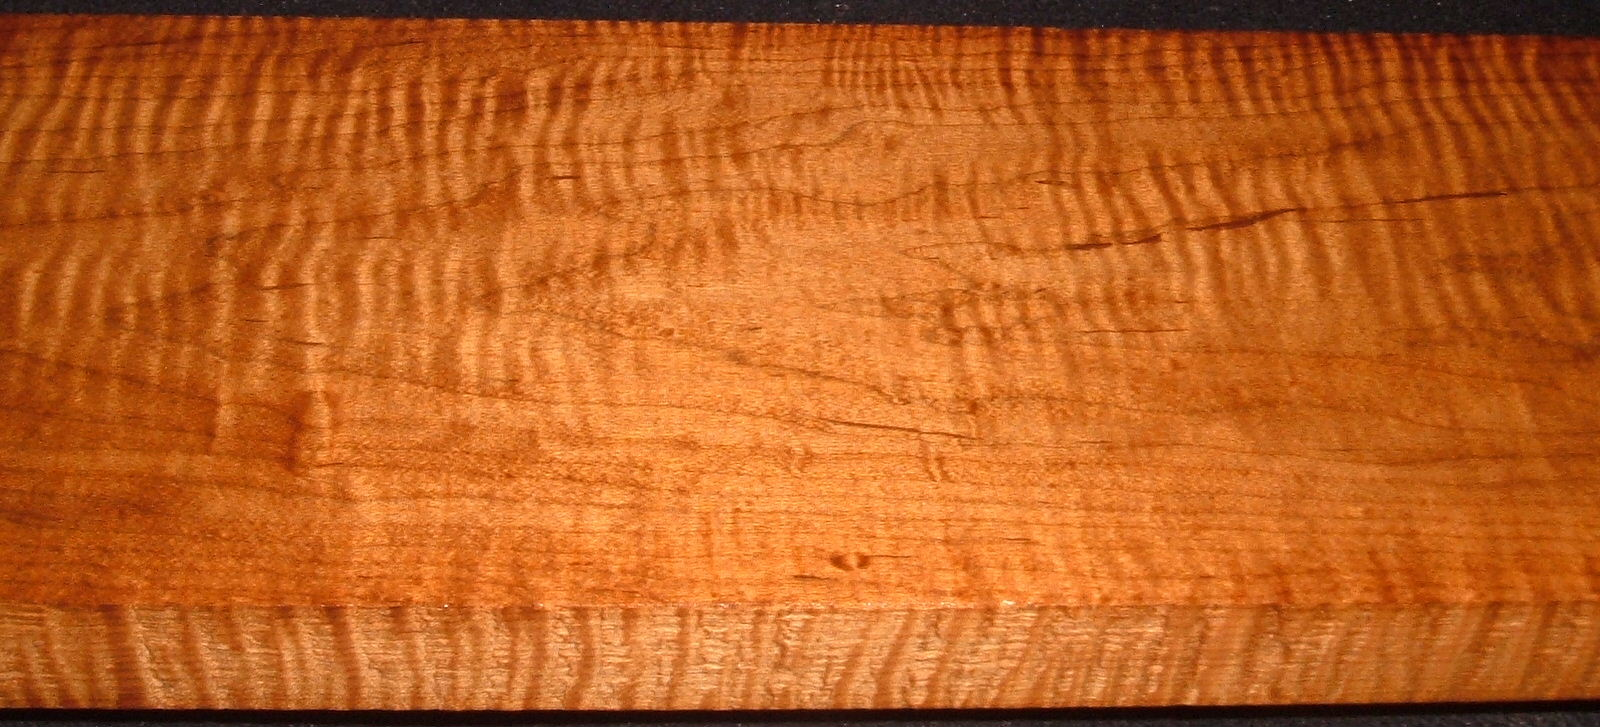 RHM2010-336,1-3/16x6x41, Roasted Torrefied Curly, Tiger Maple, Roasted Hard Maple